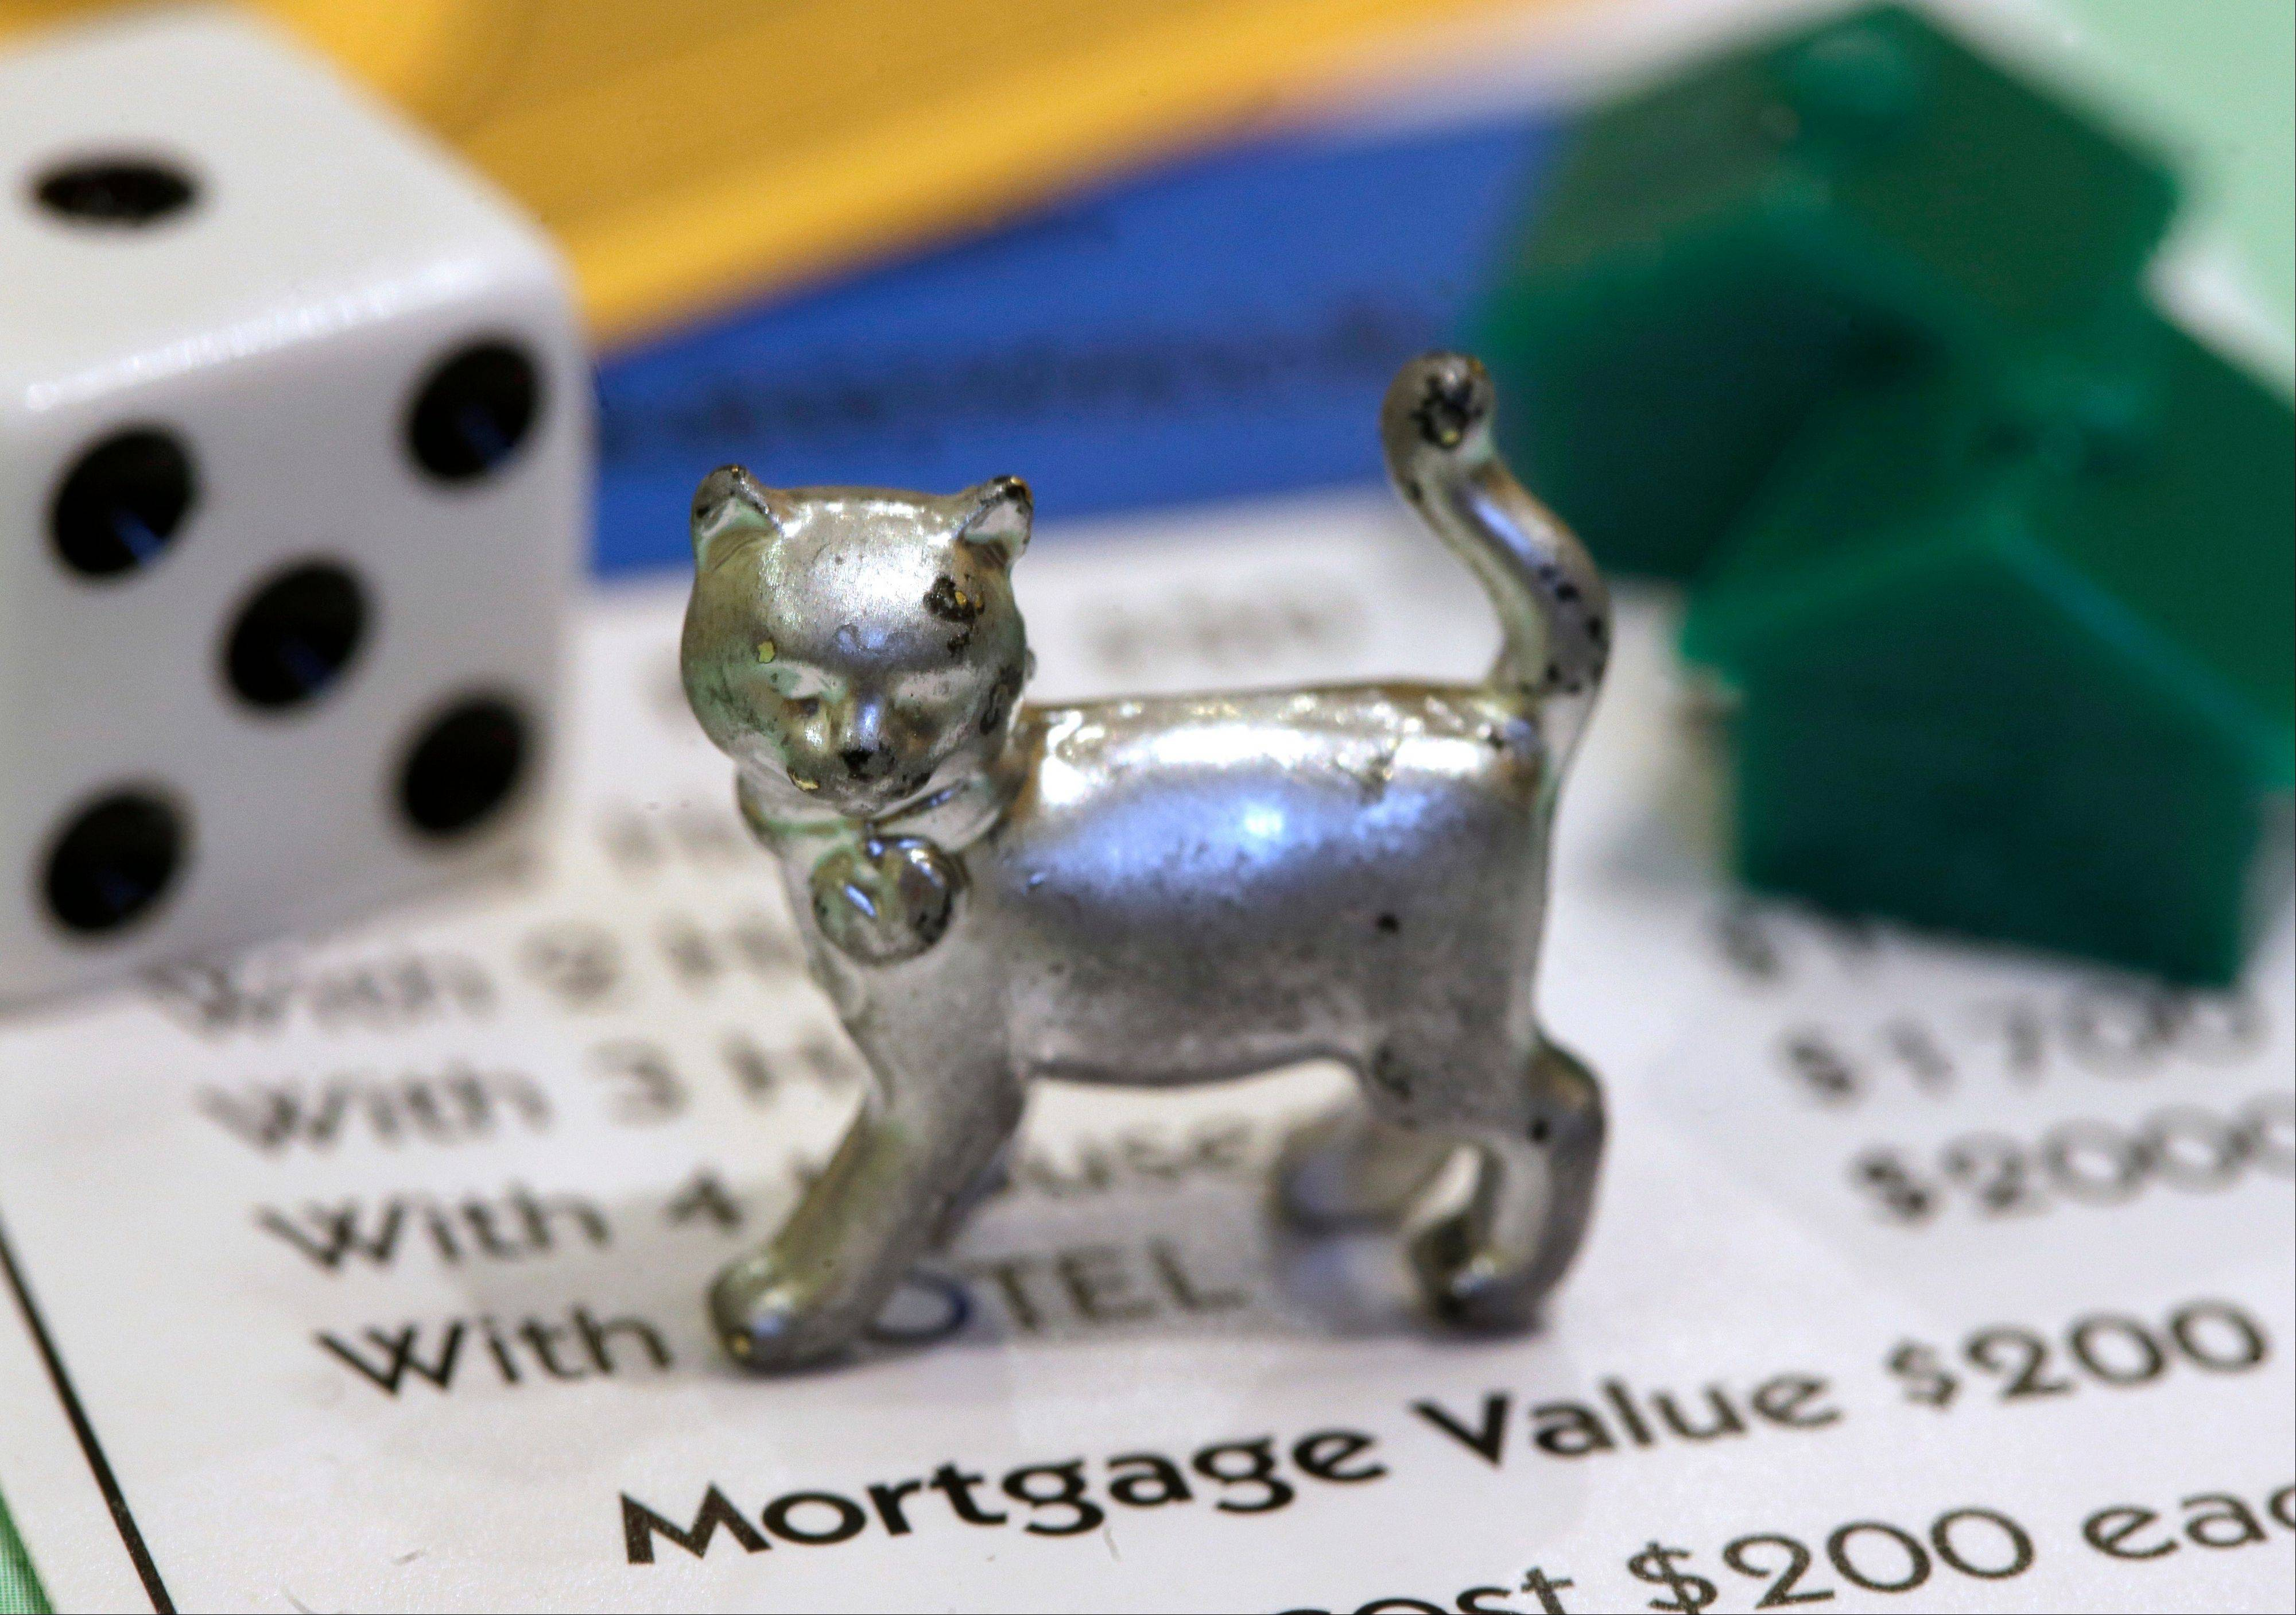 The newest Monopoly token, a cat, will be passing Go soon. Voting on Facebook determined that the cat would replace the iron token.